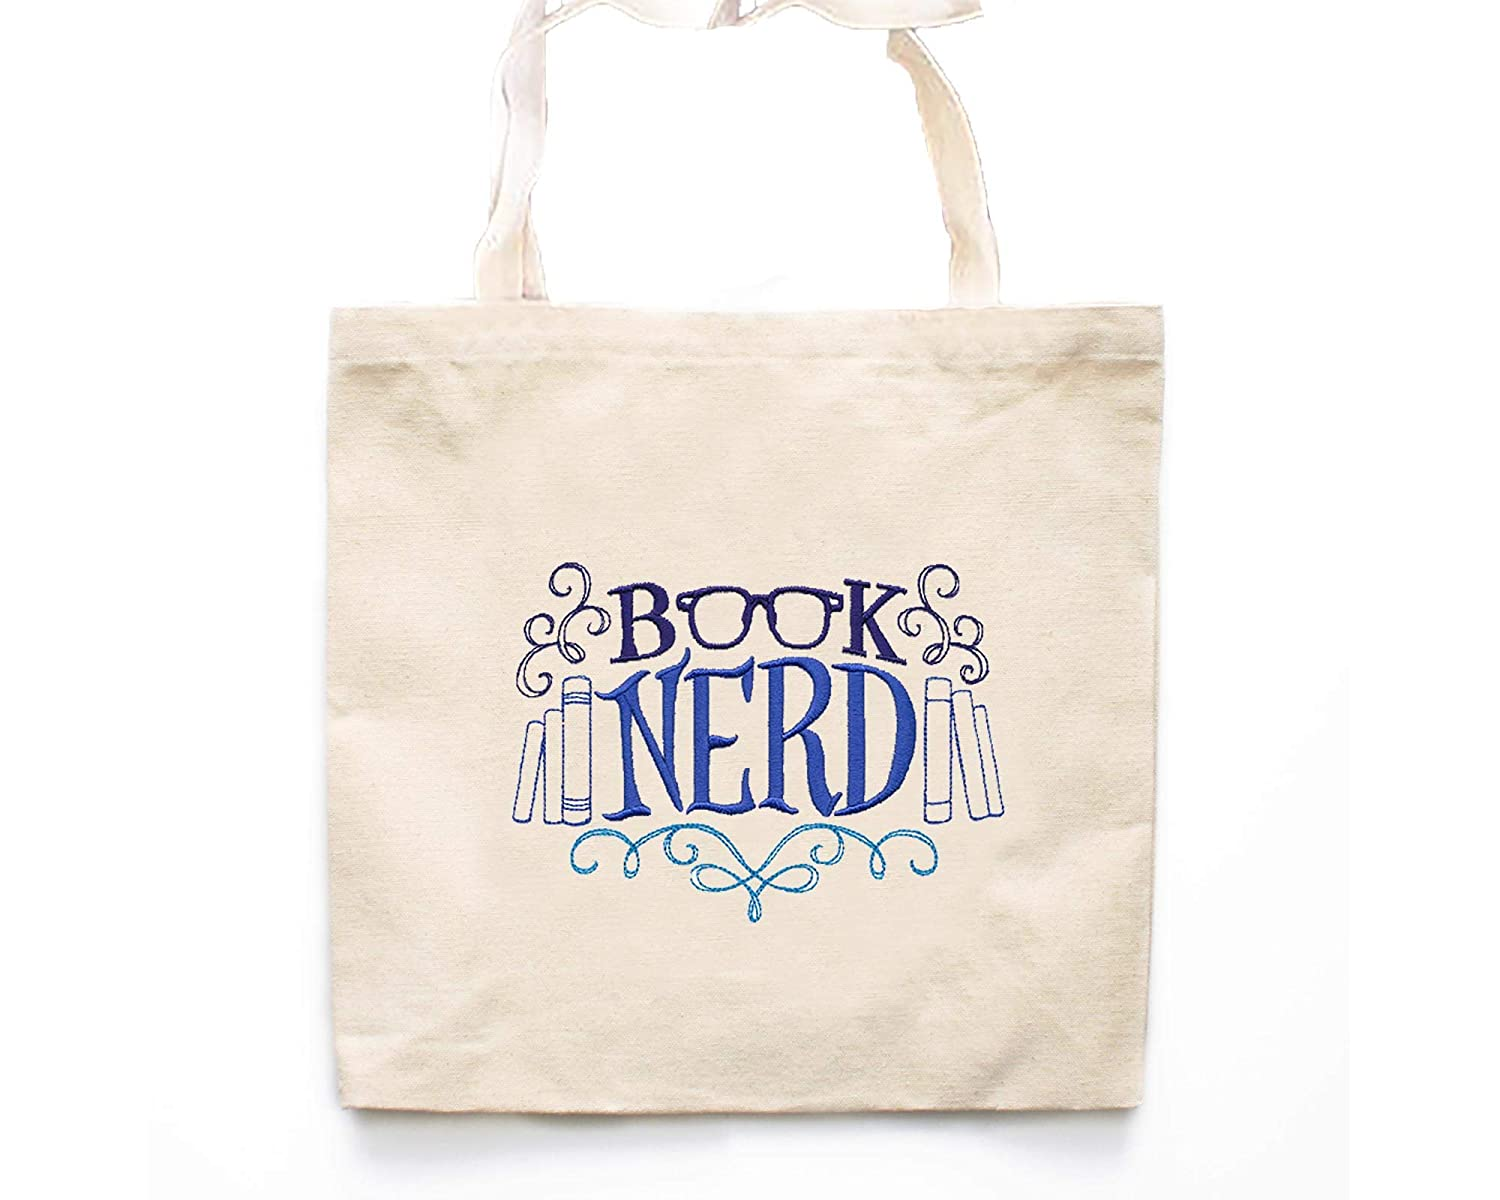 Superior OFFicial site Book Nerd Tote Bag-Market Bag-G Lover Bags-Book Canvas